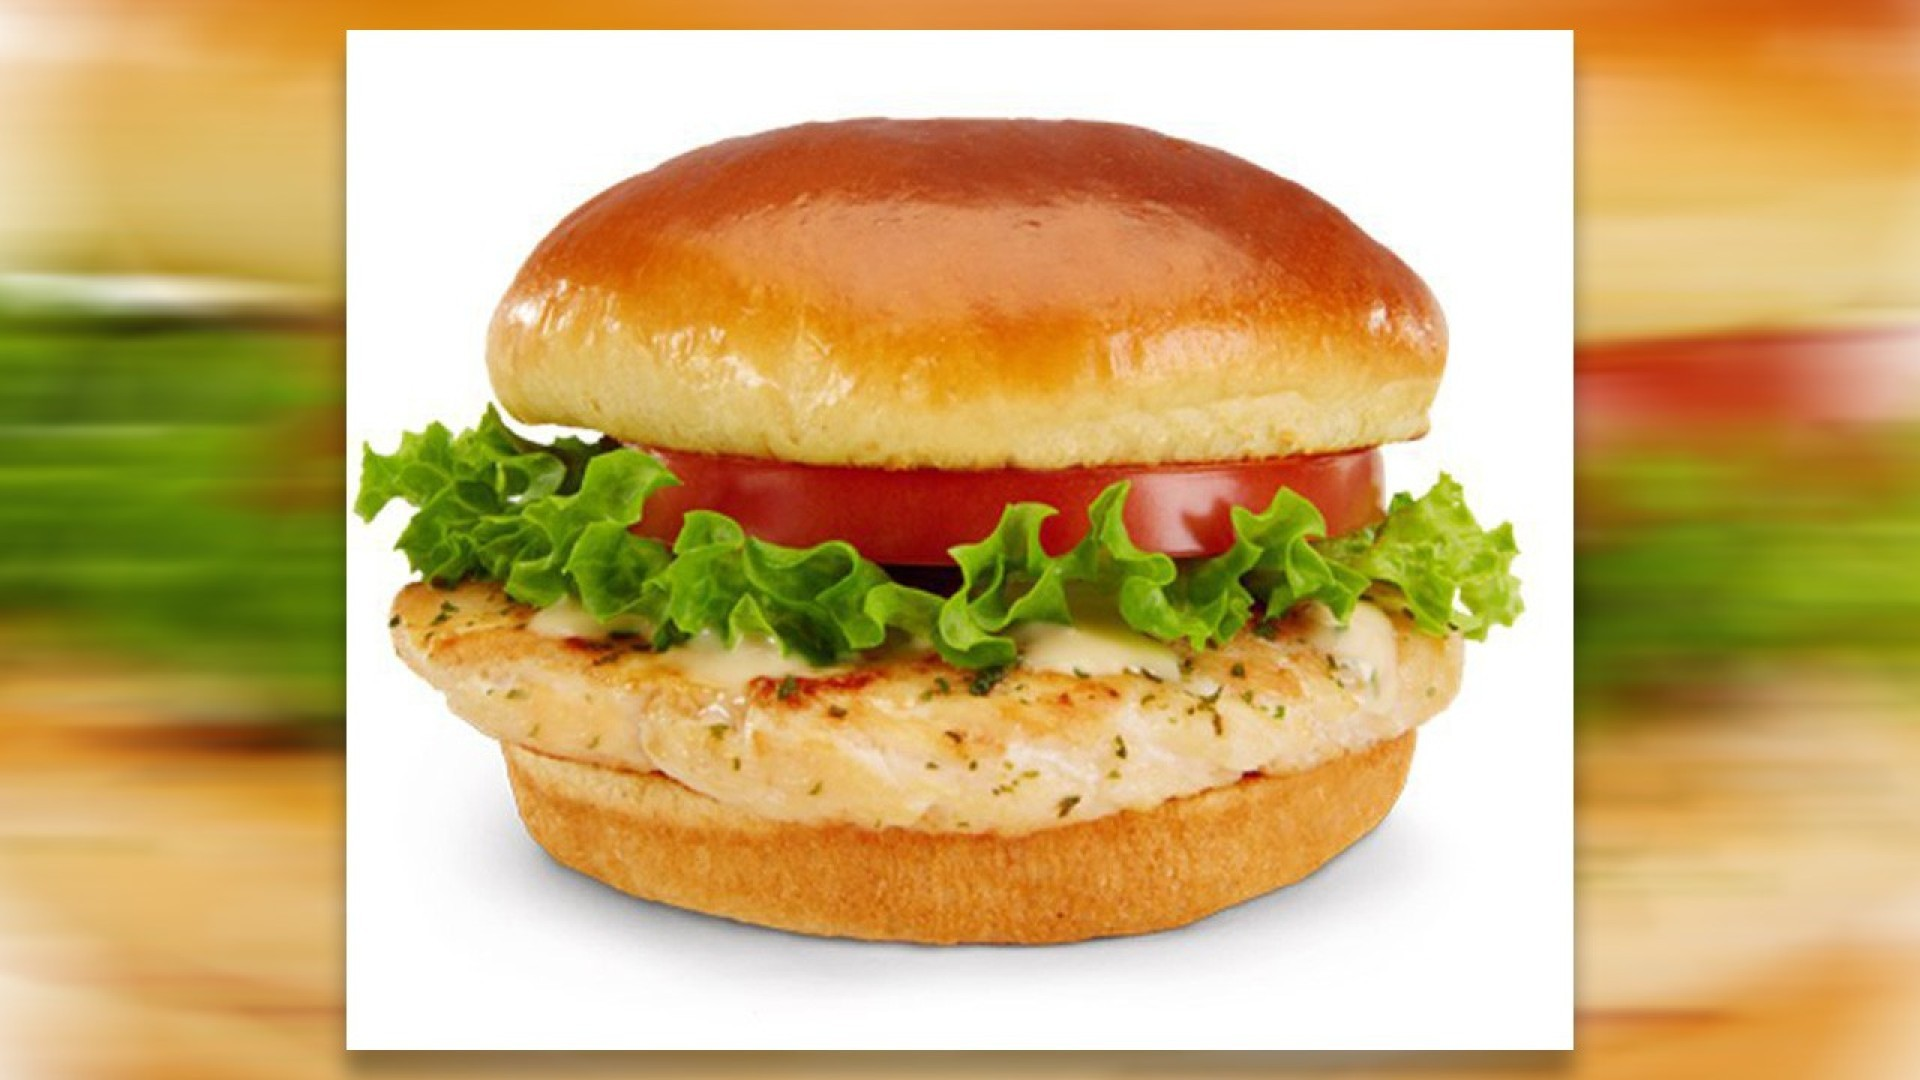 Healthy Fast Food Lunch Places